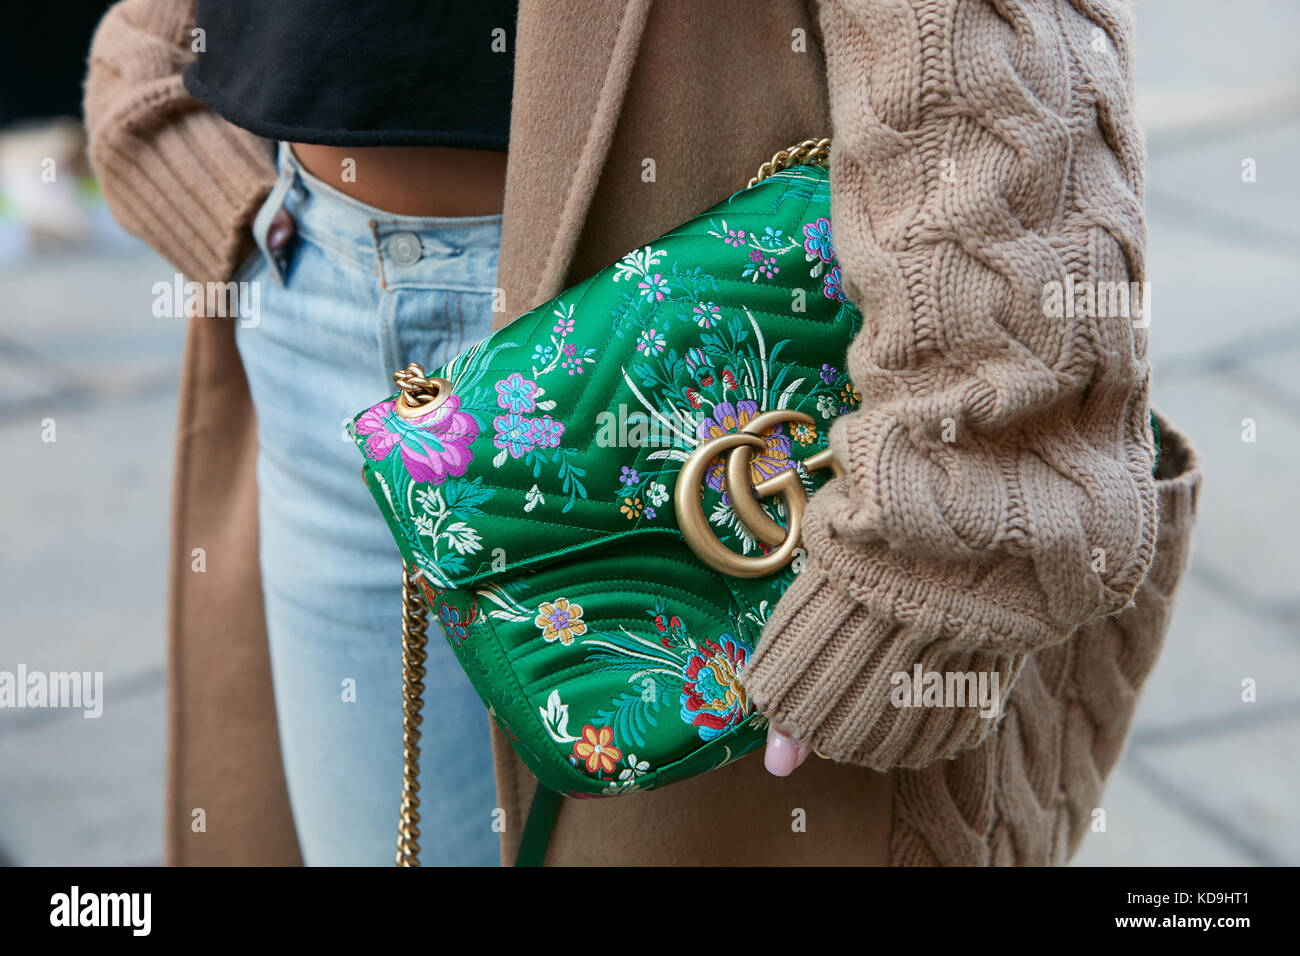 4bad37ce55d MILAN - SEPTEMBER 21  Woman with green floral design Gucci bag and beige  wool sweater